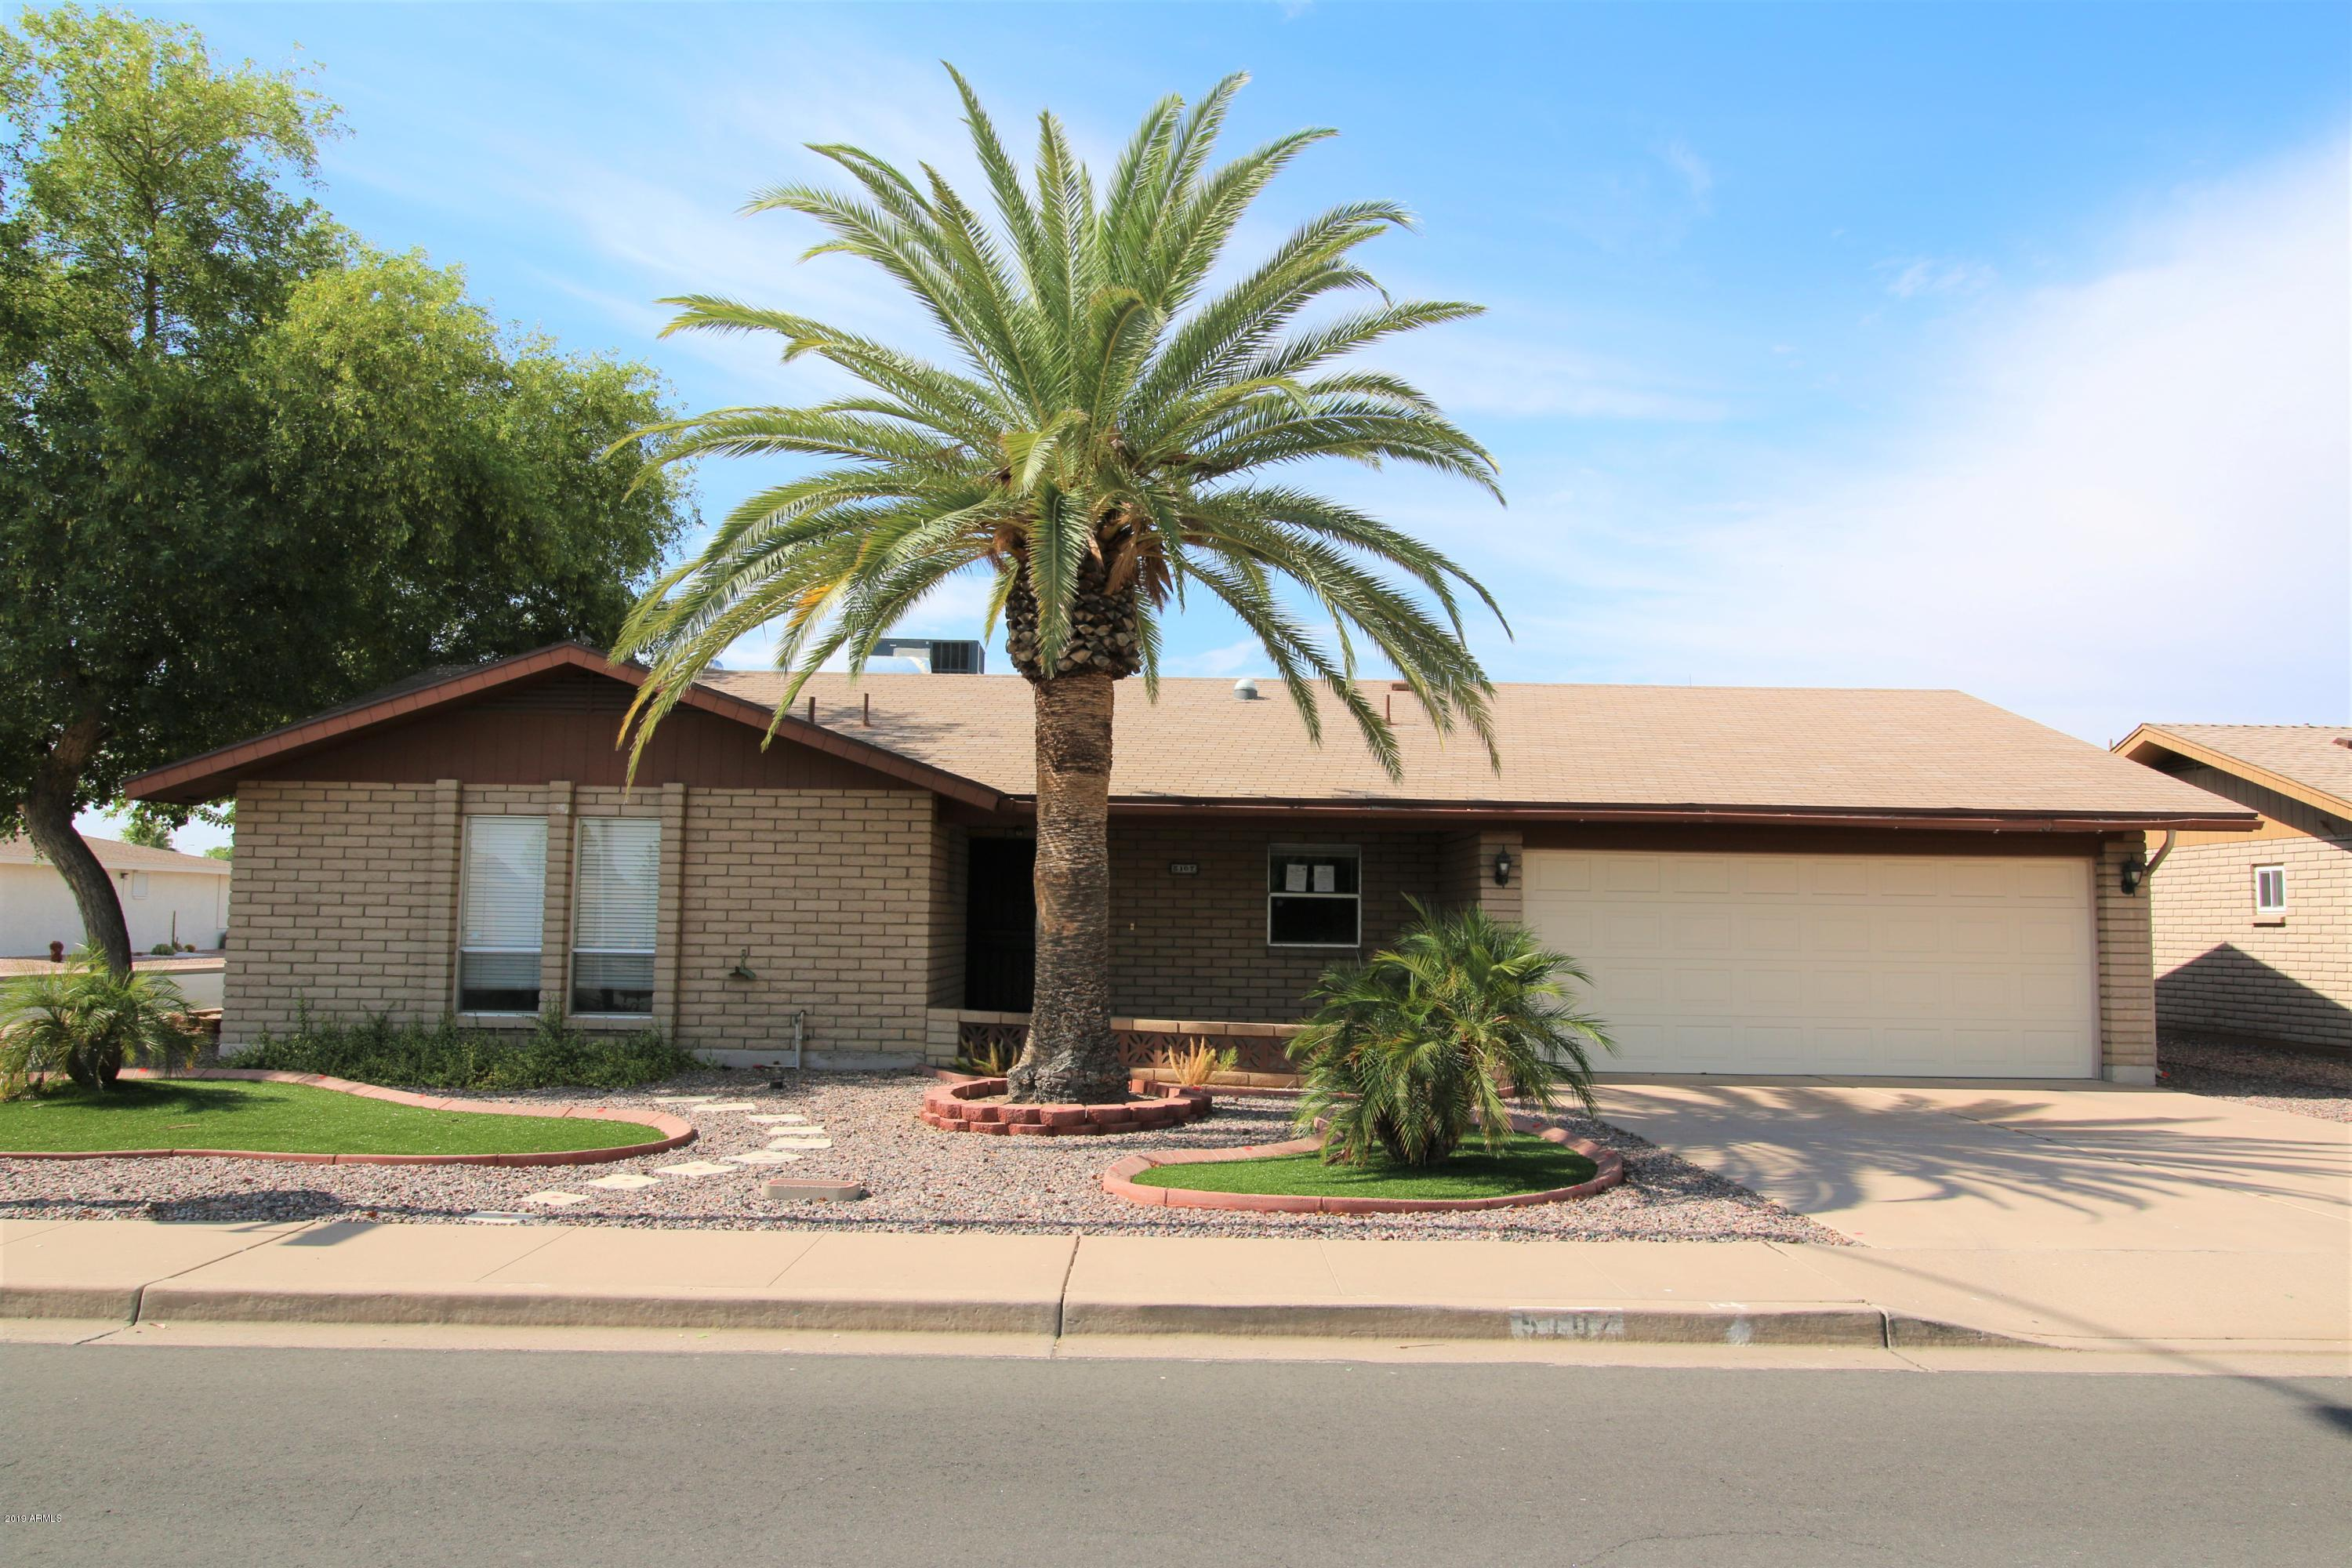 Photo of 5107 E EMERALD Avenue, Mesa, AZ 85206